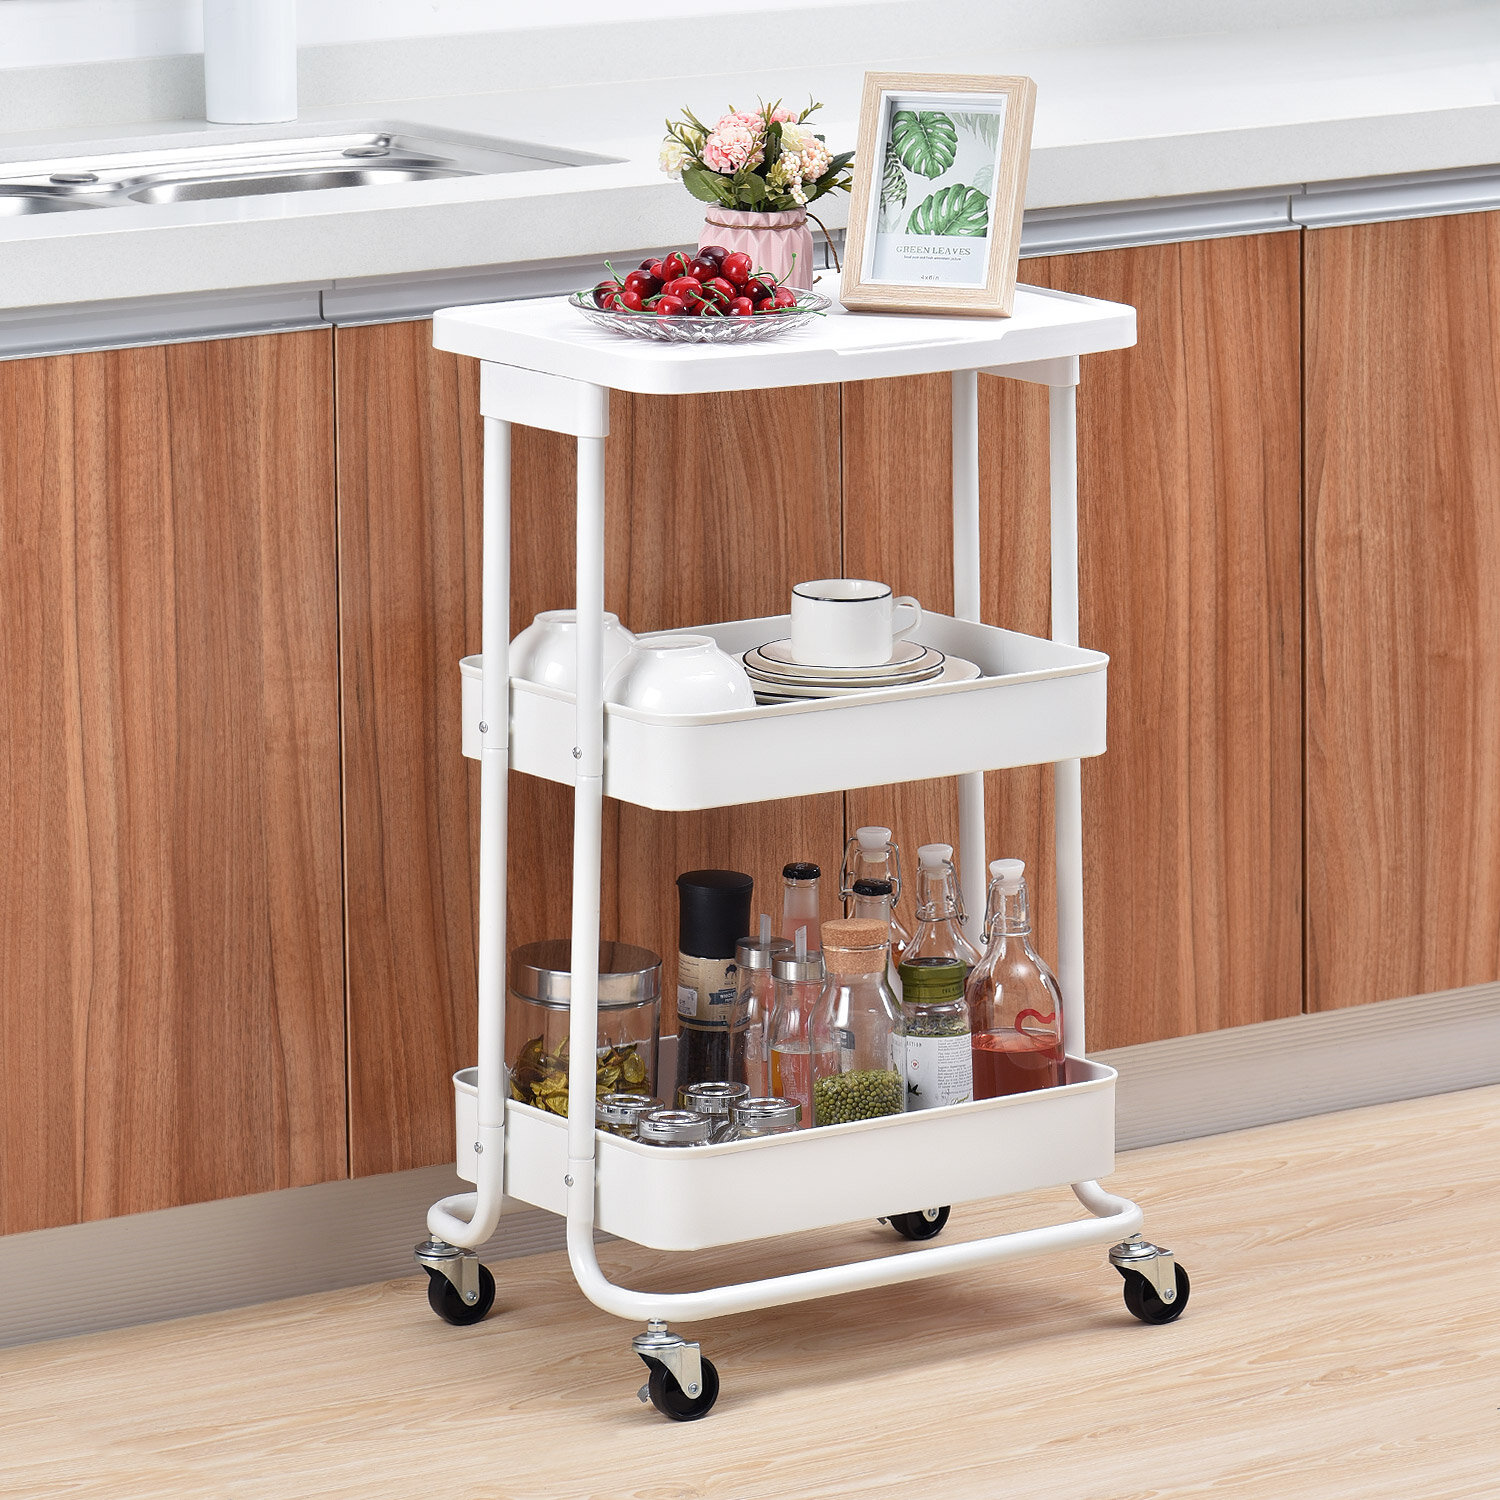 Kitchen Storage Trolley 3 Tier Metal Table Top Serving Rolling Cart Mobile Rack Organizer With Locking Wheels Standing Shelf Laptop Desk For Kitchen Home Office Sale Price Buy Online At Best Prices